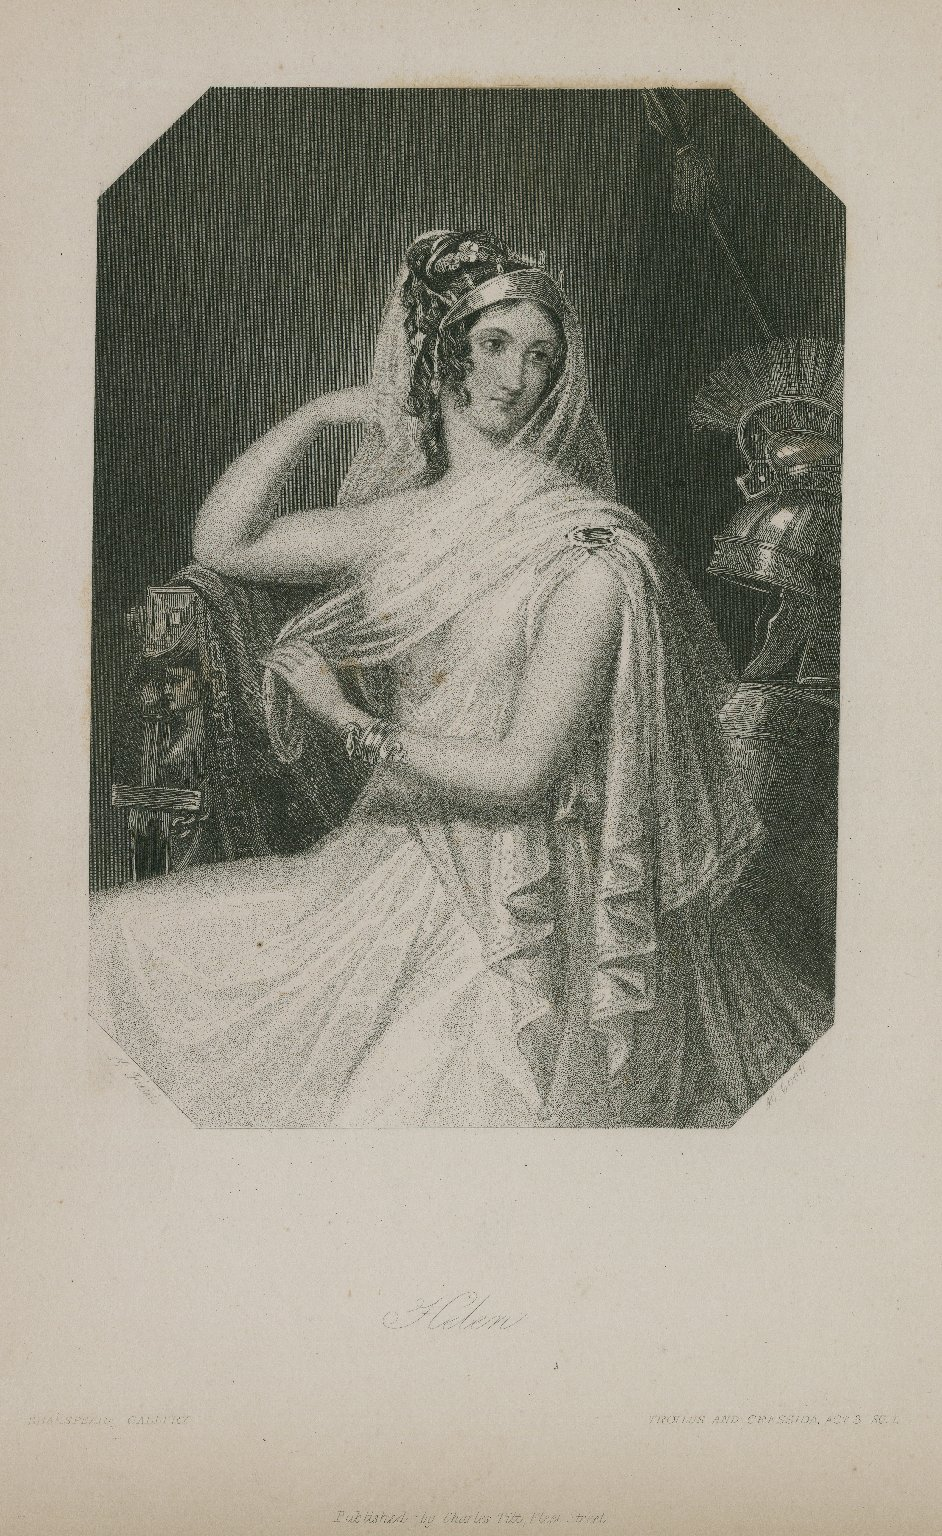 Helen, Troilus and Cressida, act 3, sc. 1 [graphic] / K. Fields ; H. Cook.